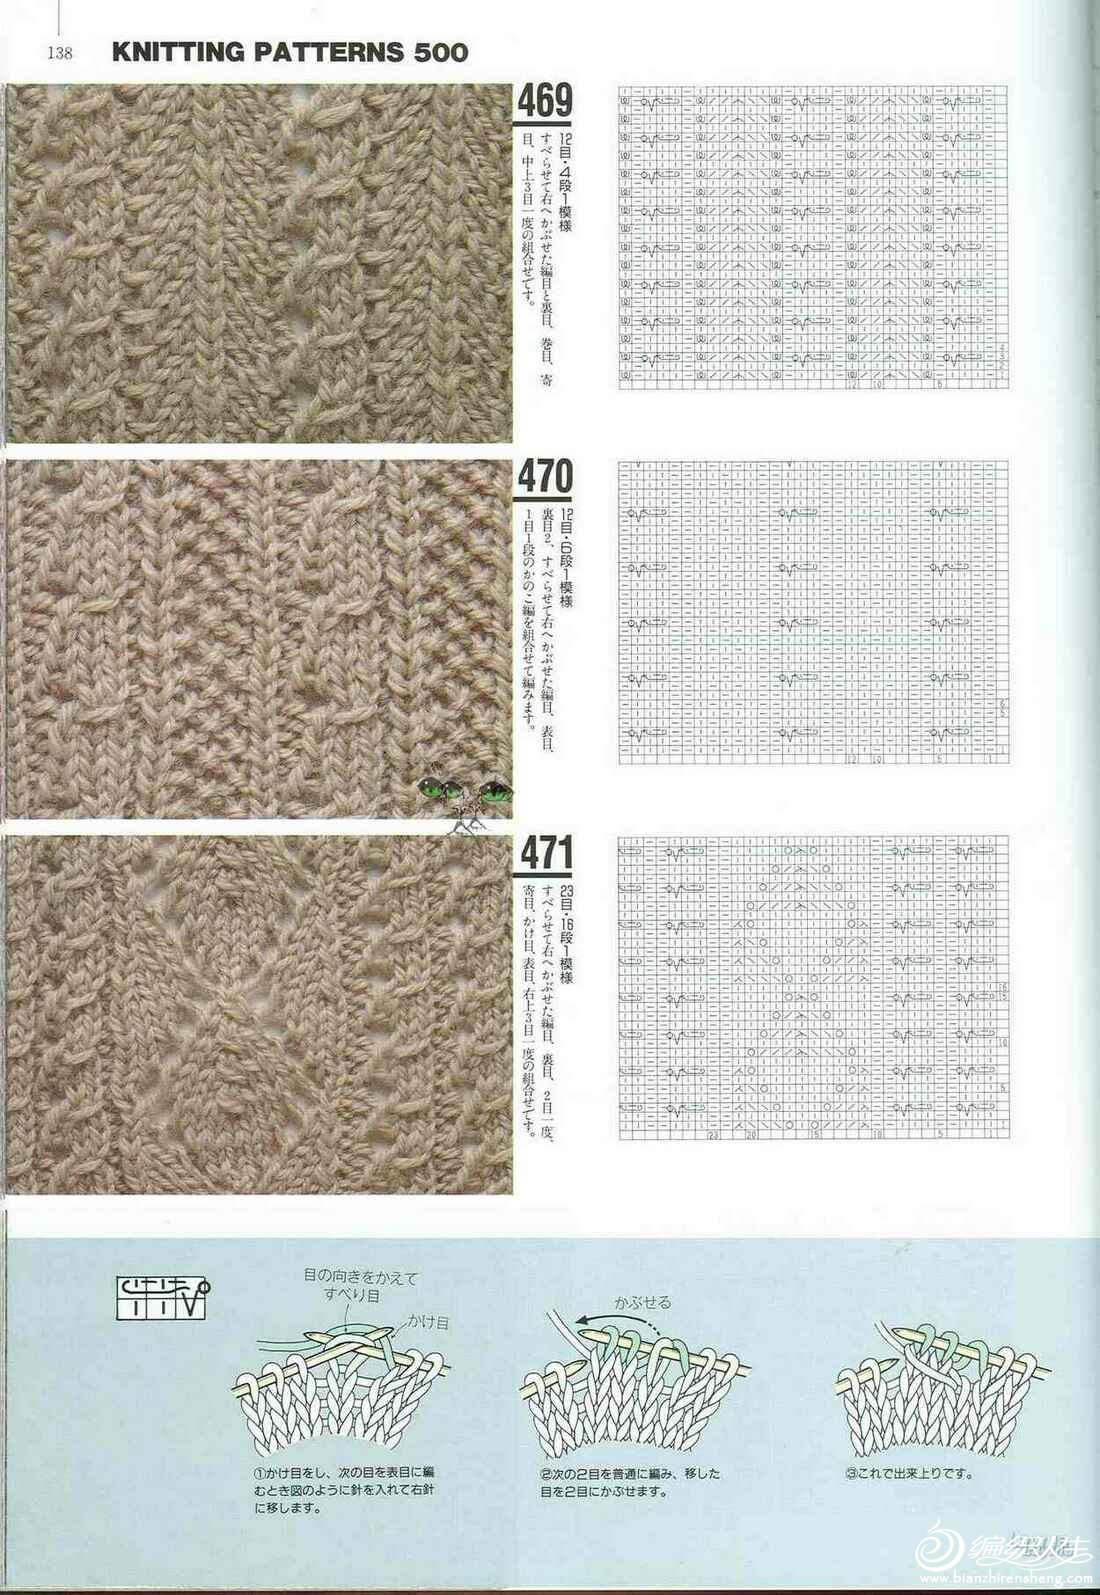 Knitting Patterns 500 135.jpg